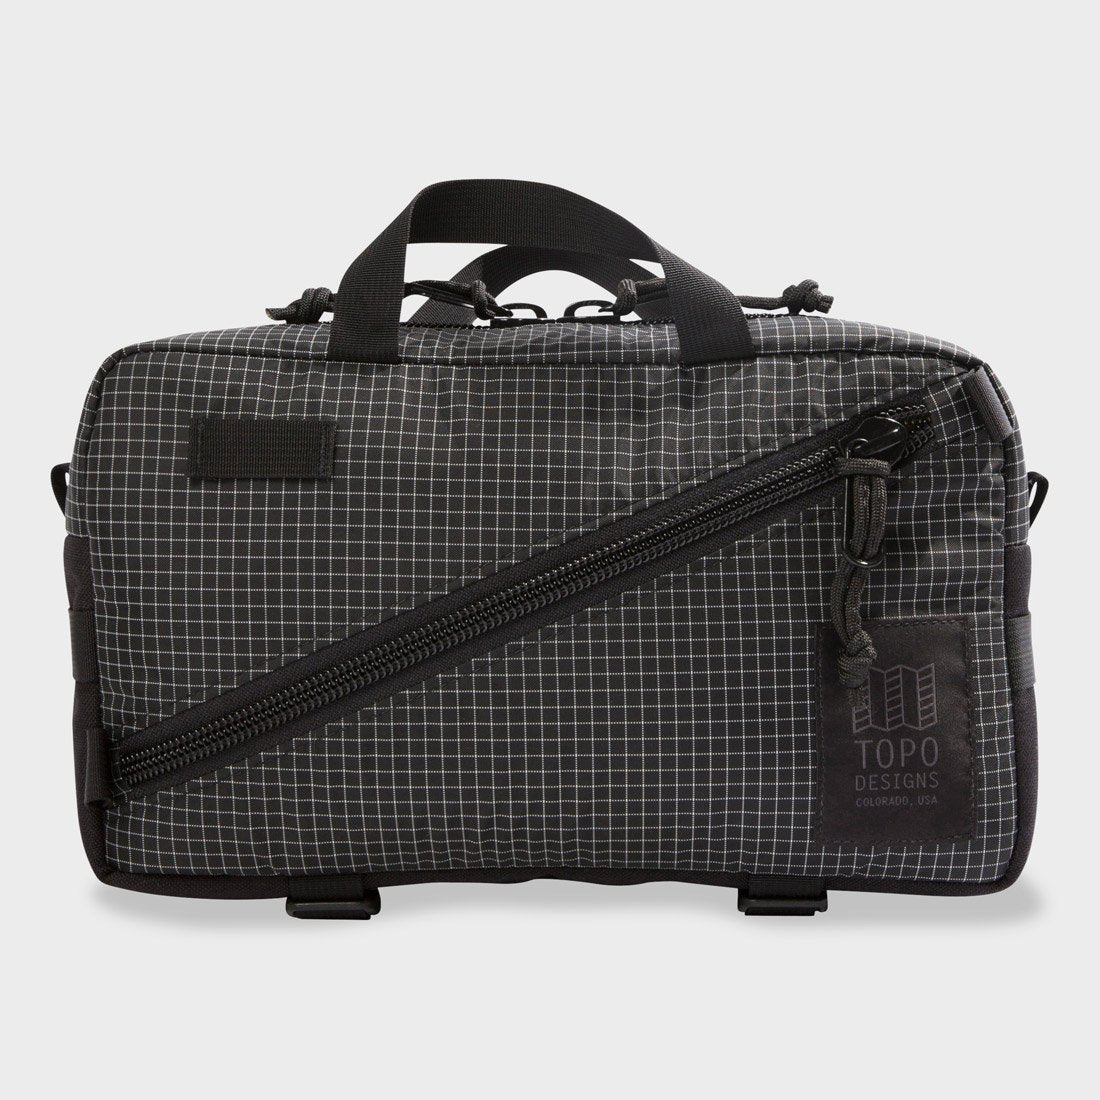 Topo Designs Quick Pack Black/ White Ripstop